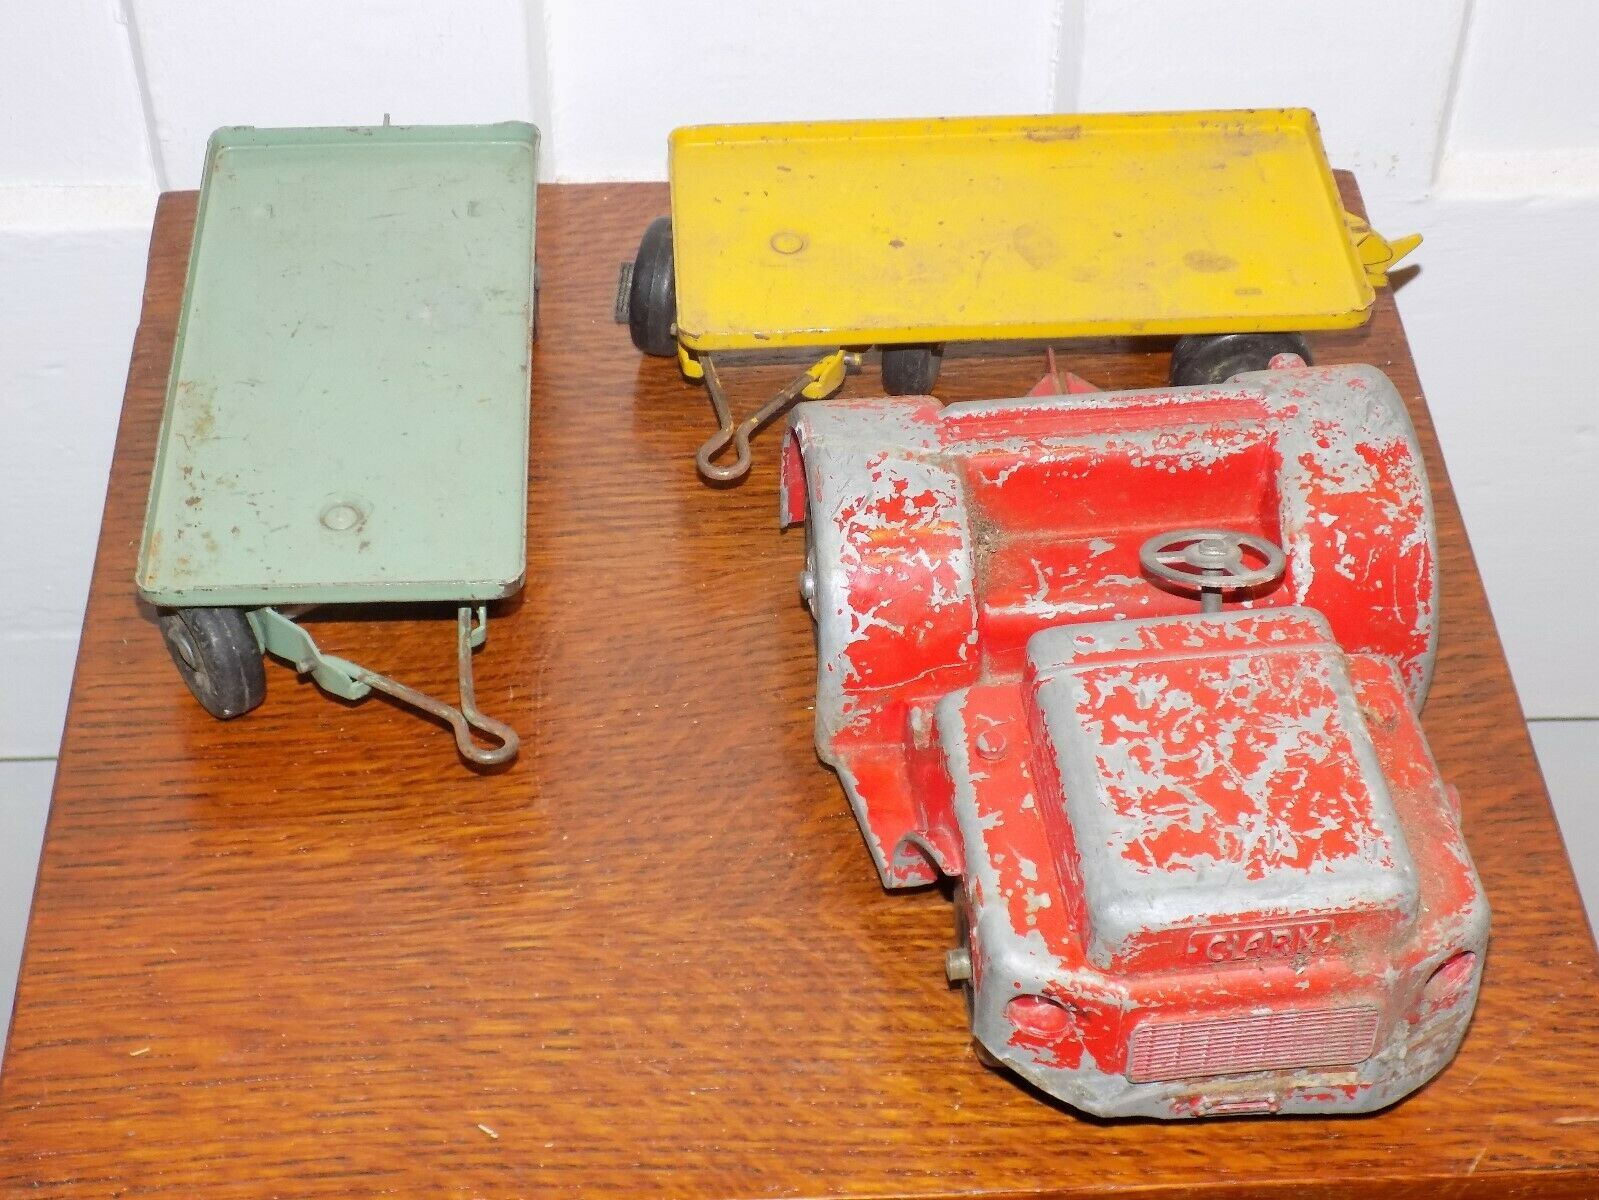 Model Toys Baggage Tram with Two Carts